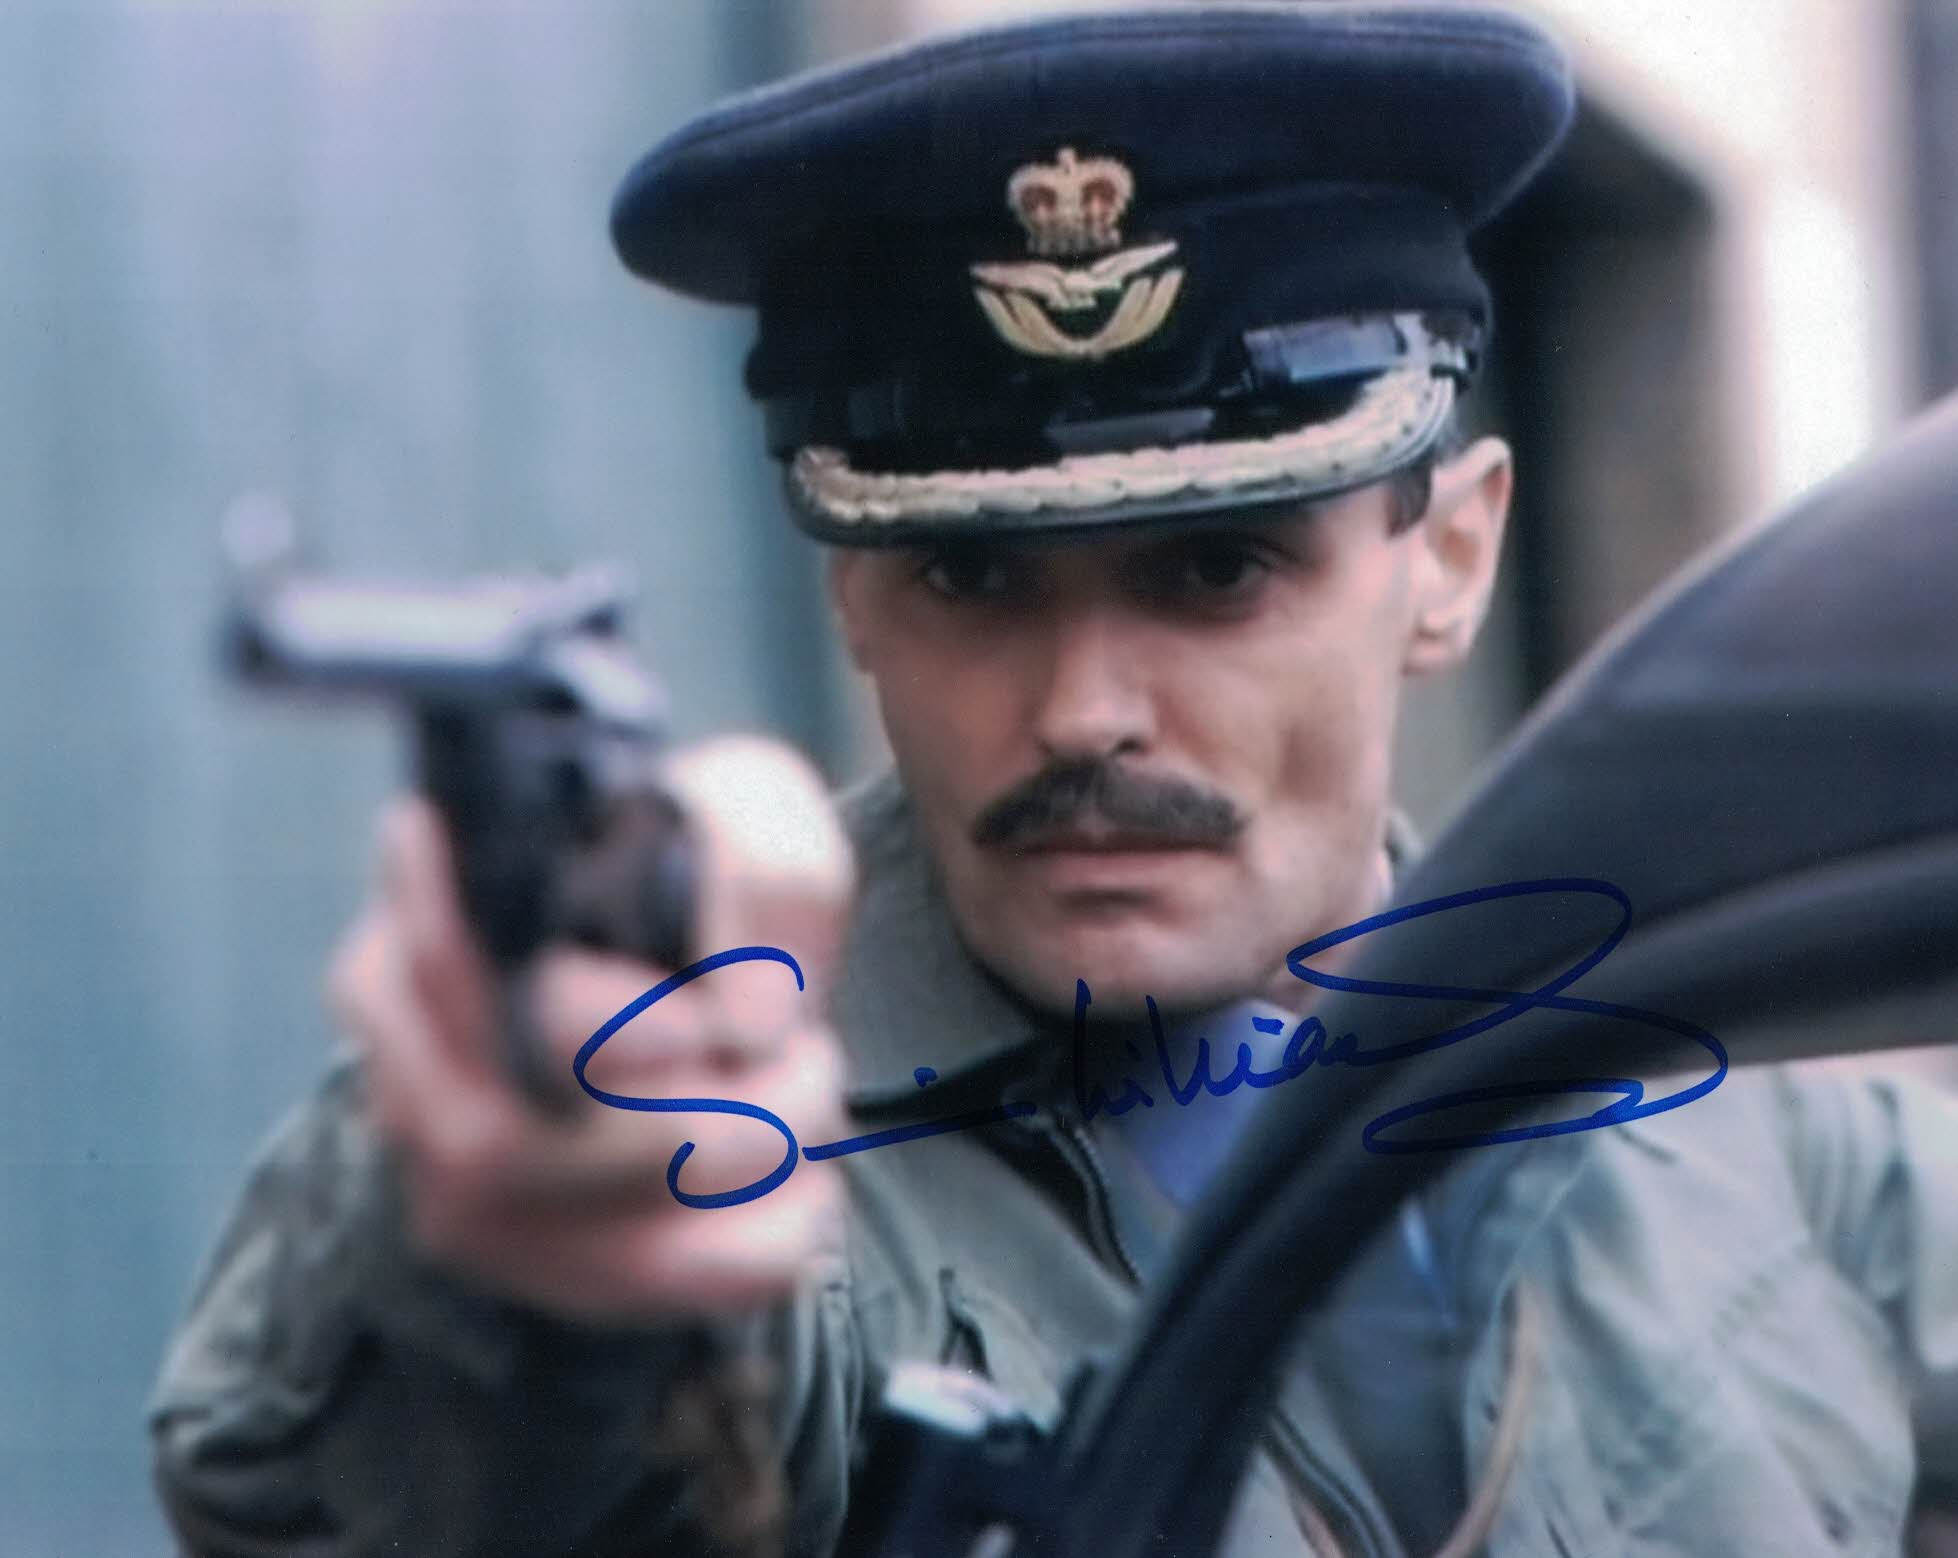 SIMON WILLIAMS - Group Cpt Gilmore in Doctor Who hand signed 10 x 8 photo